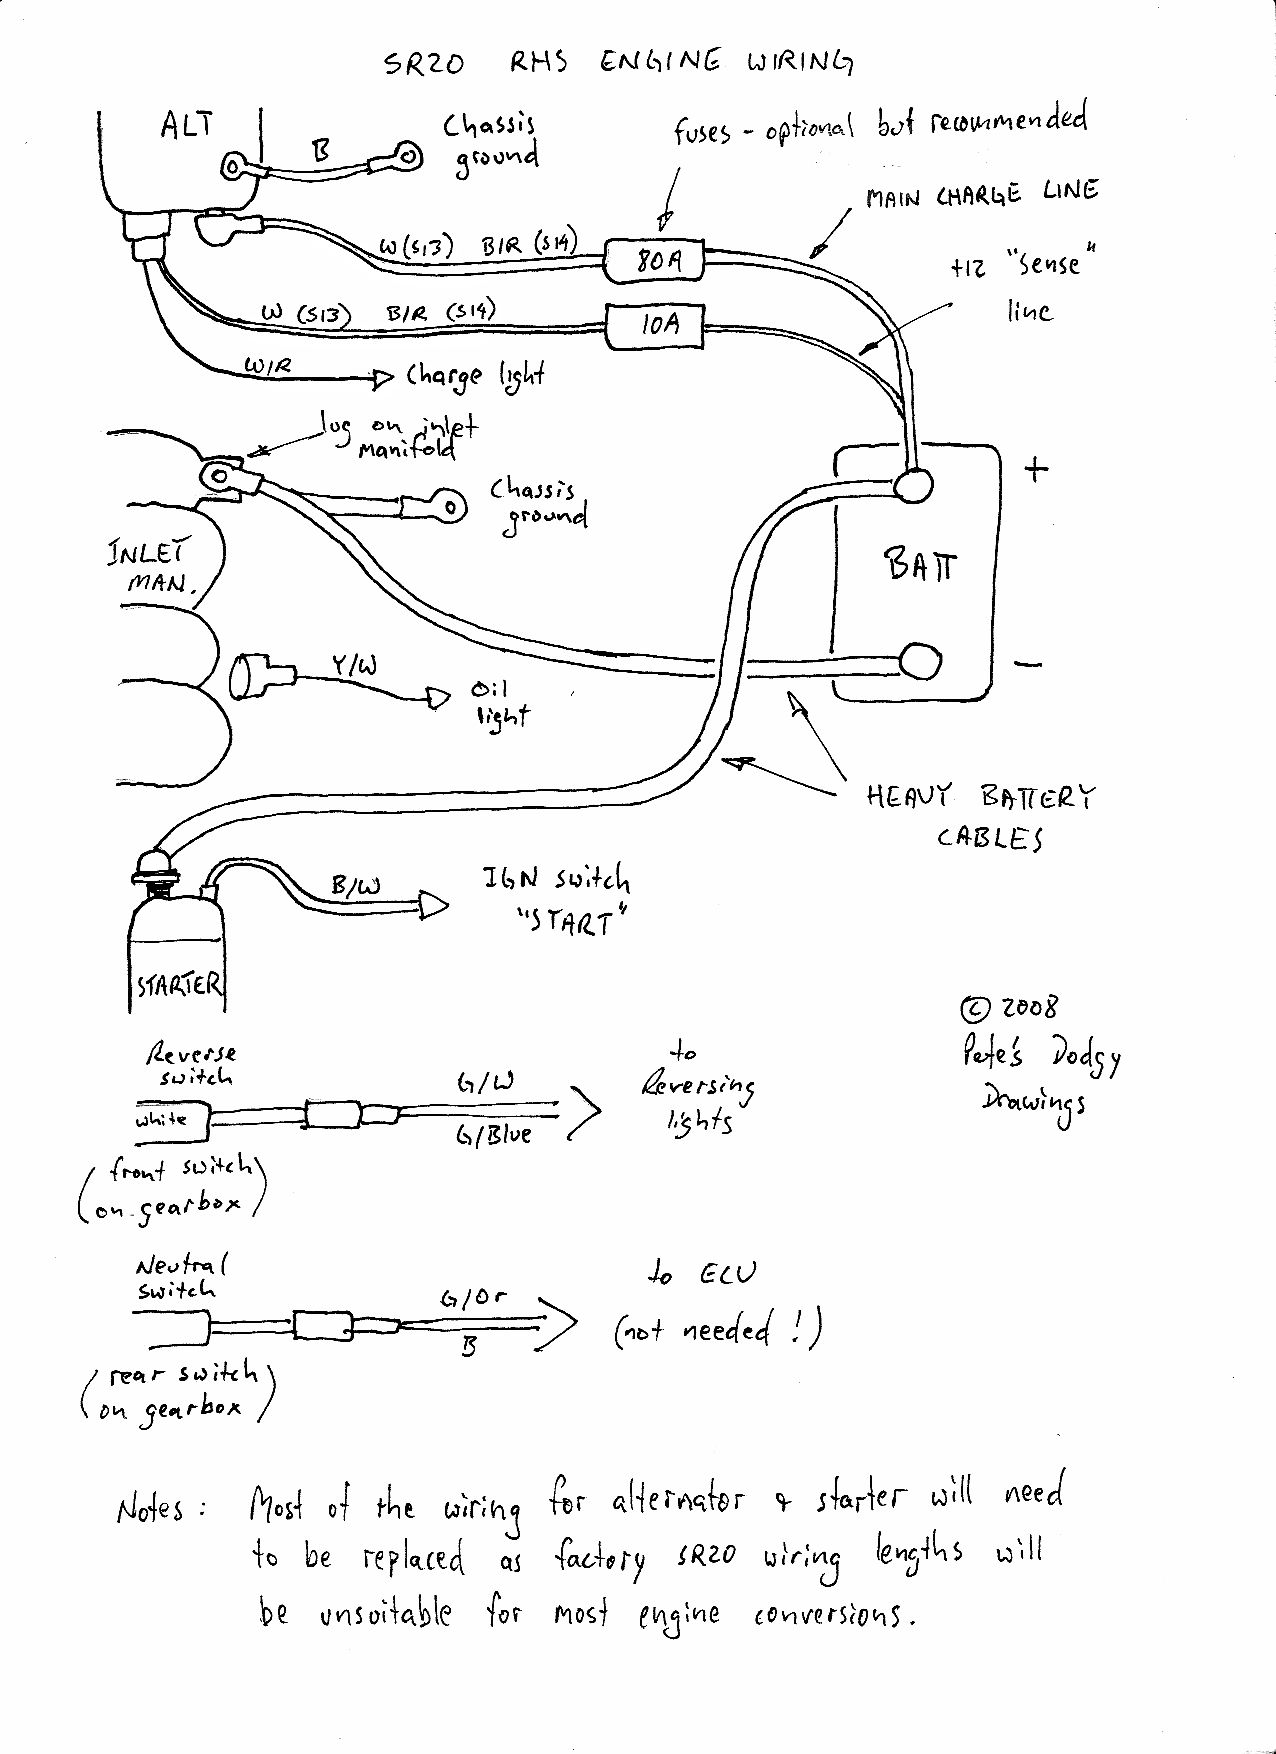 rhs_wiring sr20det wiring into 510 the 510 realm sr20 wiring diagram at edmiracle.co